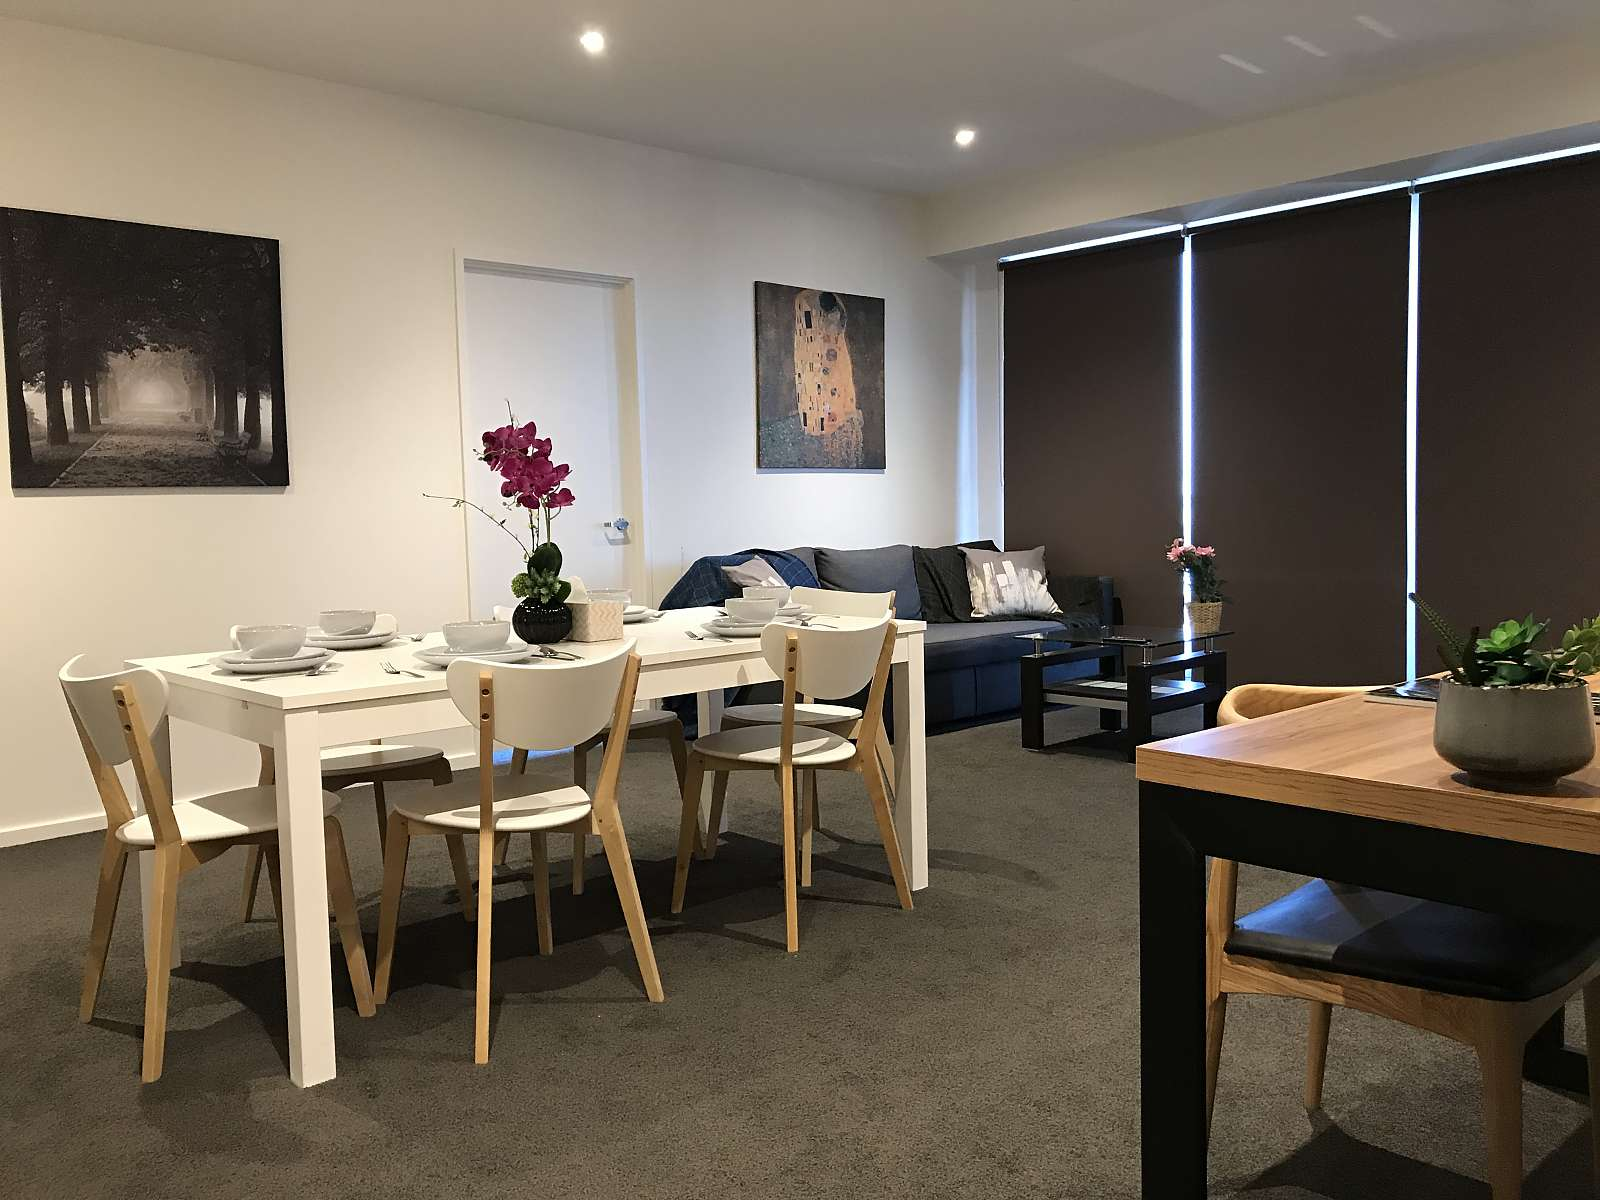 308-Hennston-Management-Group-Pty-Ltd-accomodation-Adelaide-CBD